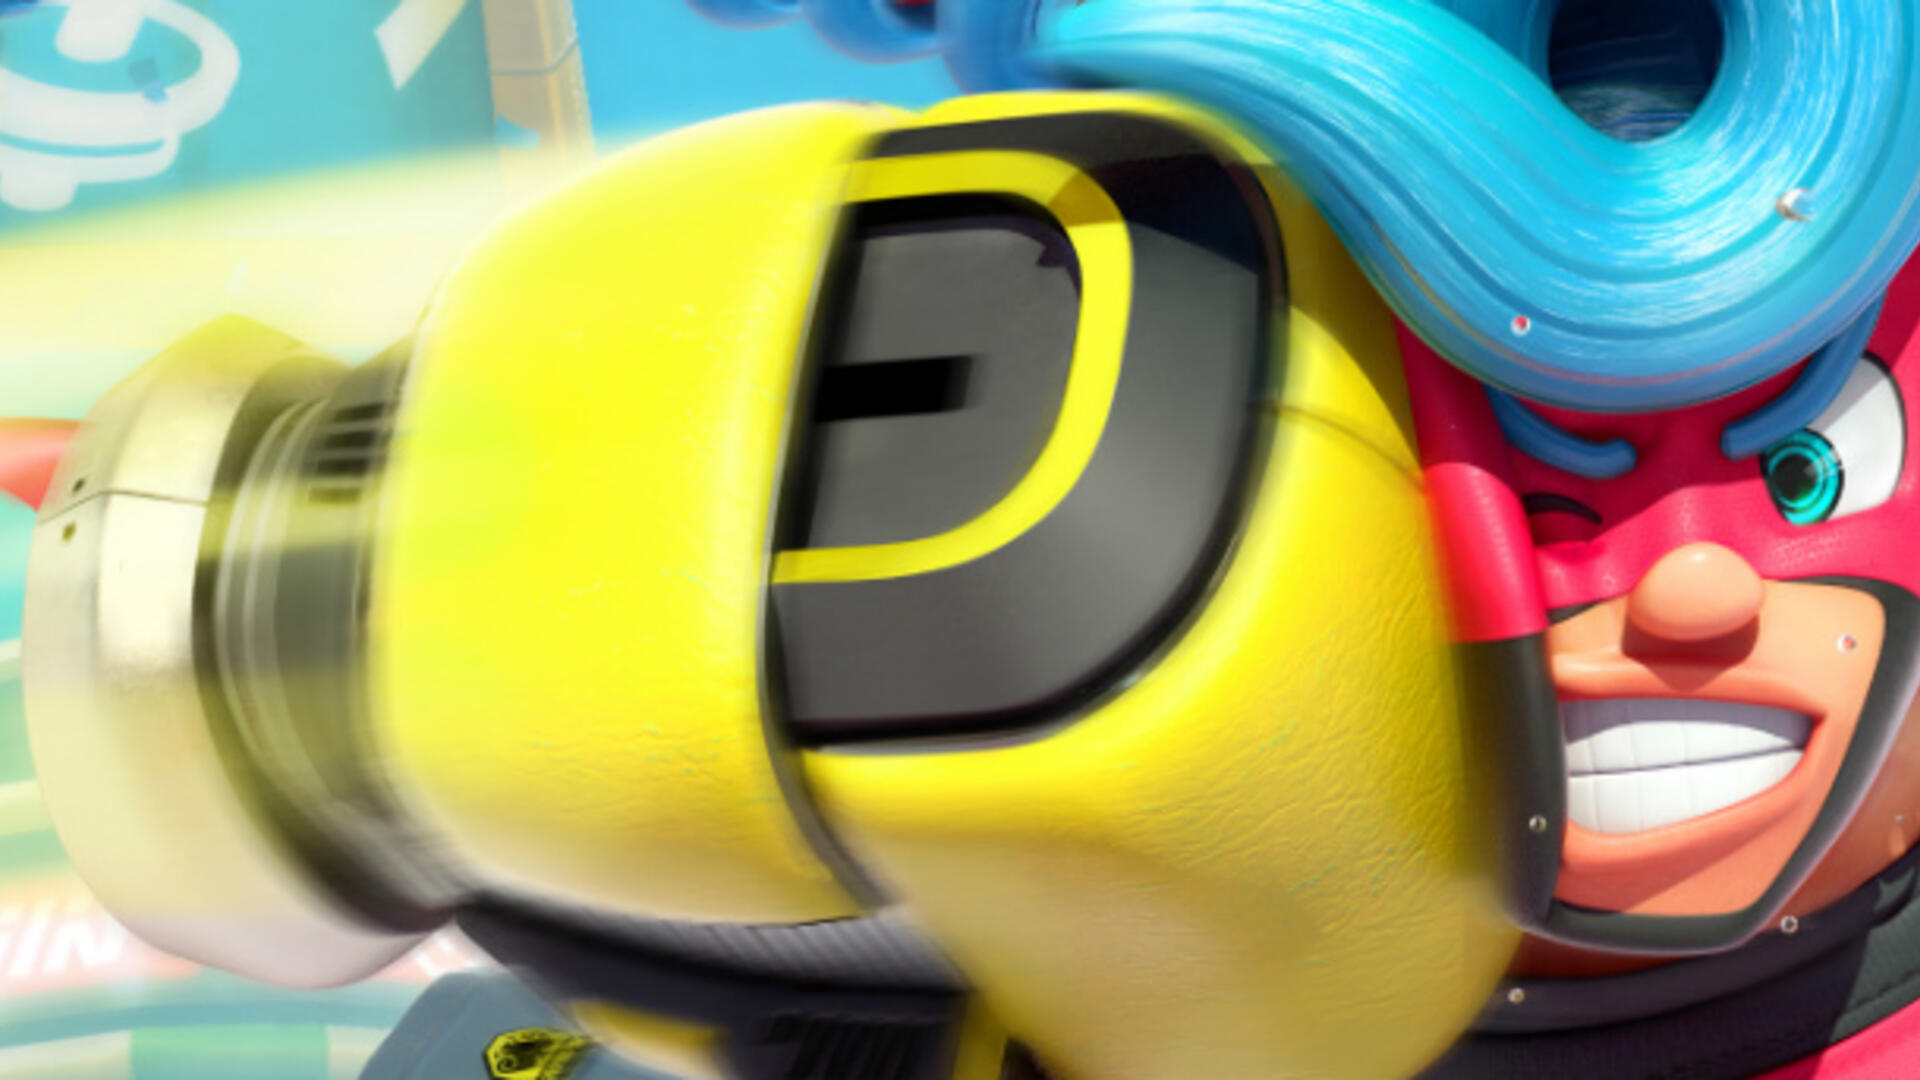 Arms Hands-On Impressions: Armed, But Friendly